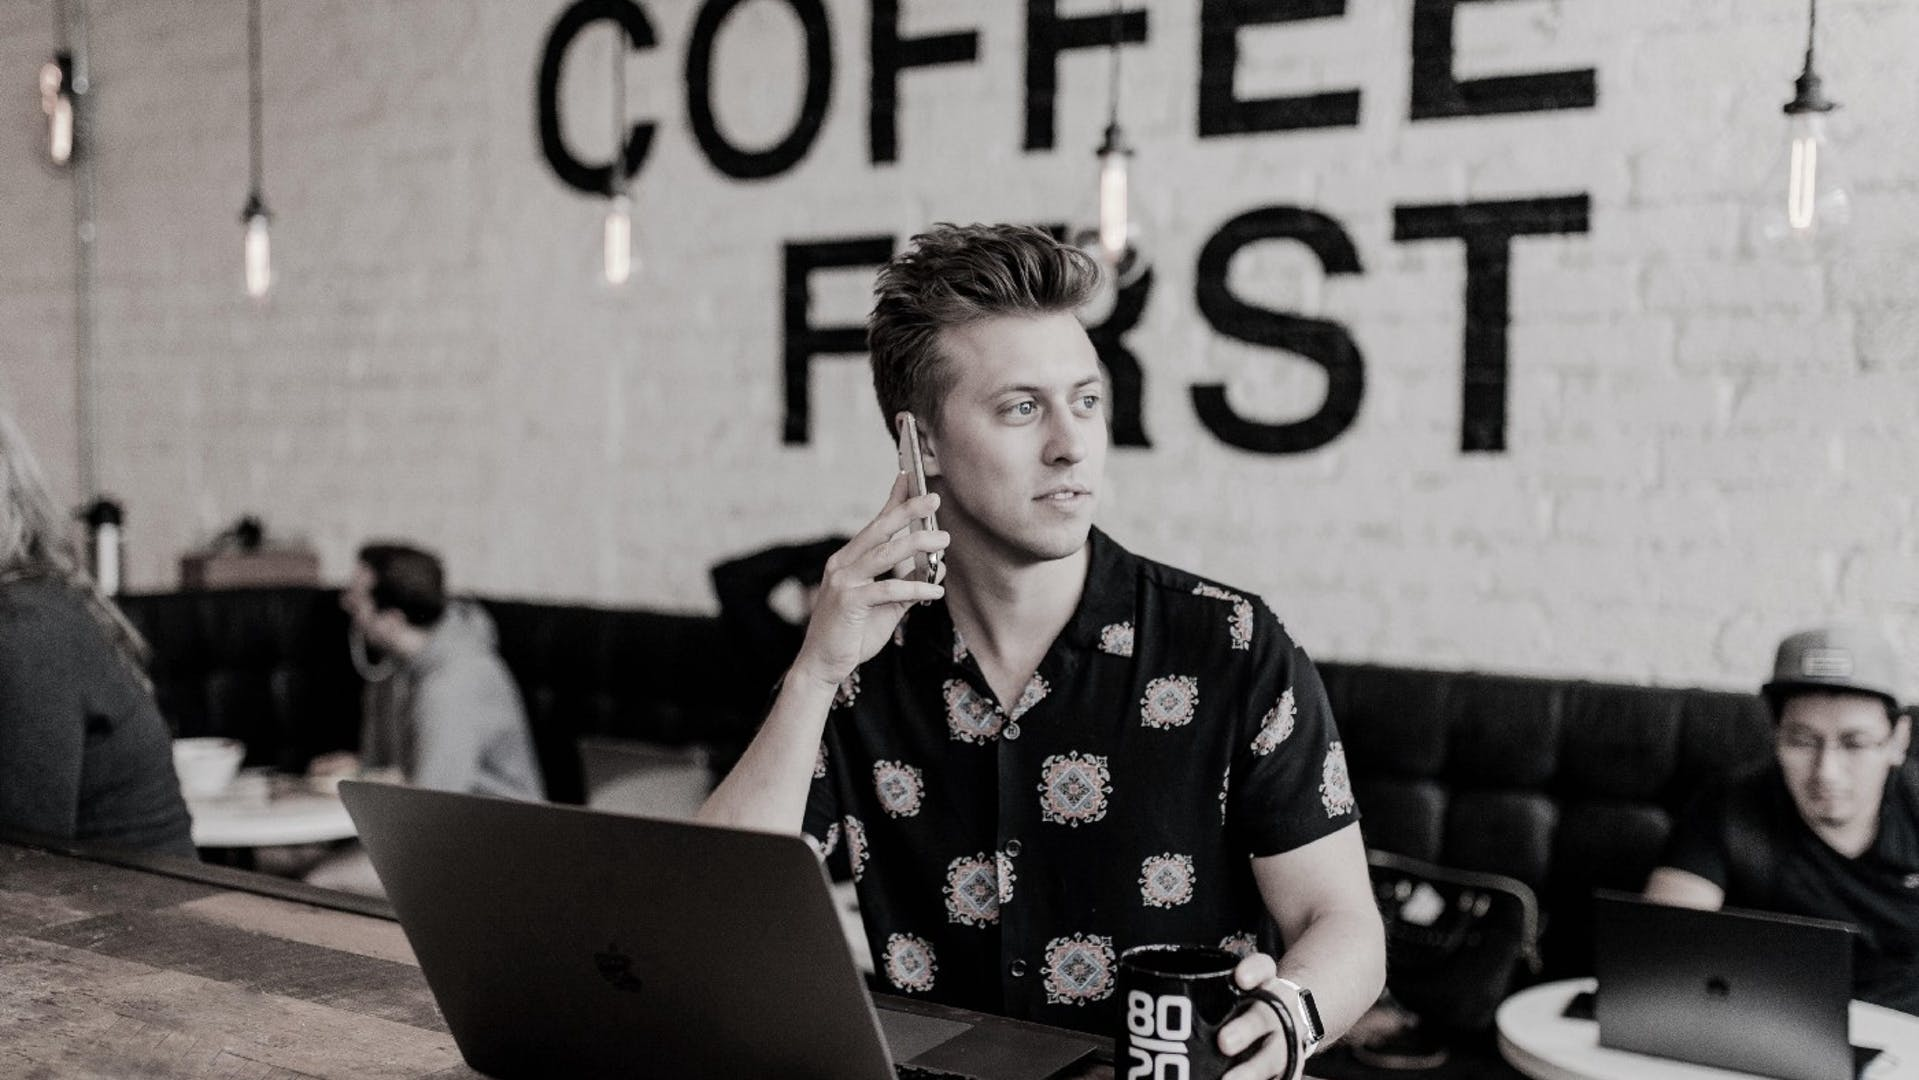 Coffee shop owner working on a laptop and talking on the phone